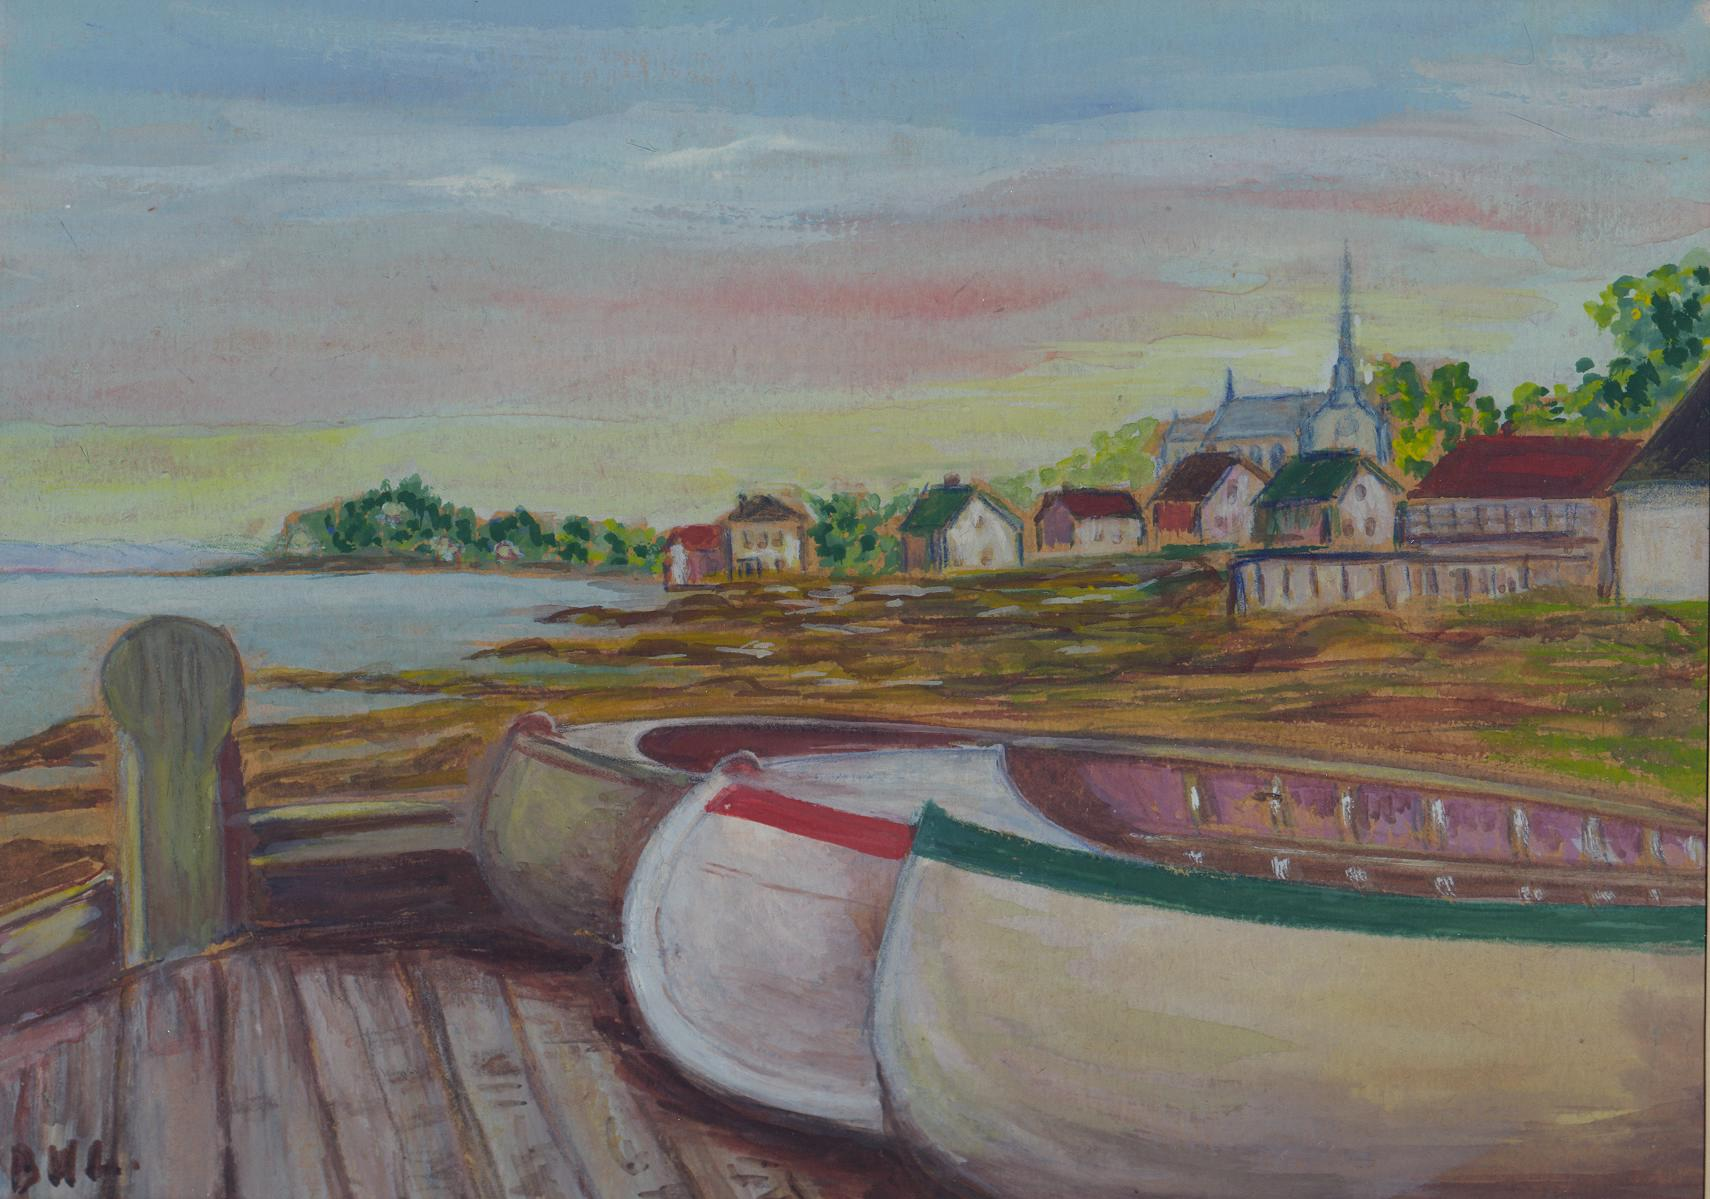 A watercolour depicting three canoes on a wharf and a coastal village in the background.